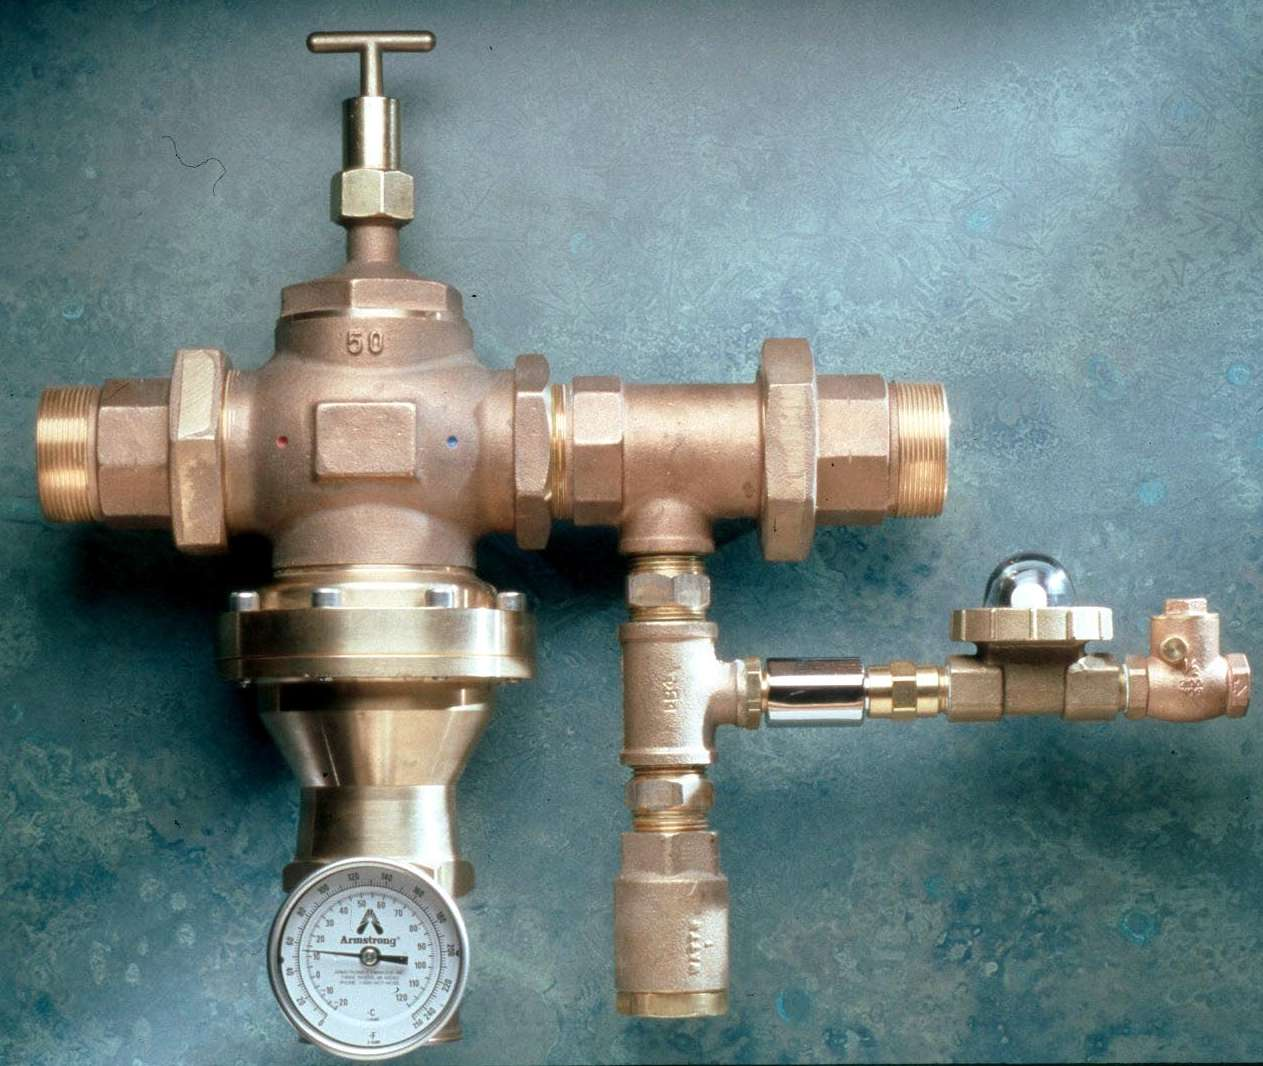 Industrial Thermostatic Mixing Valve: One Valve To Control Your Highs And Lows